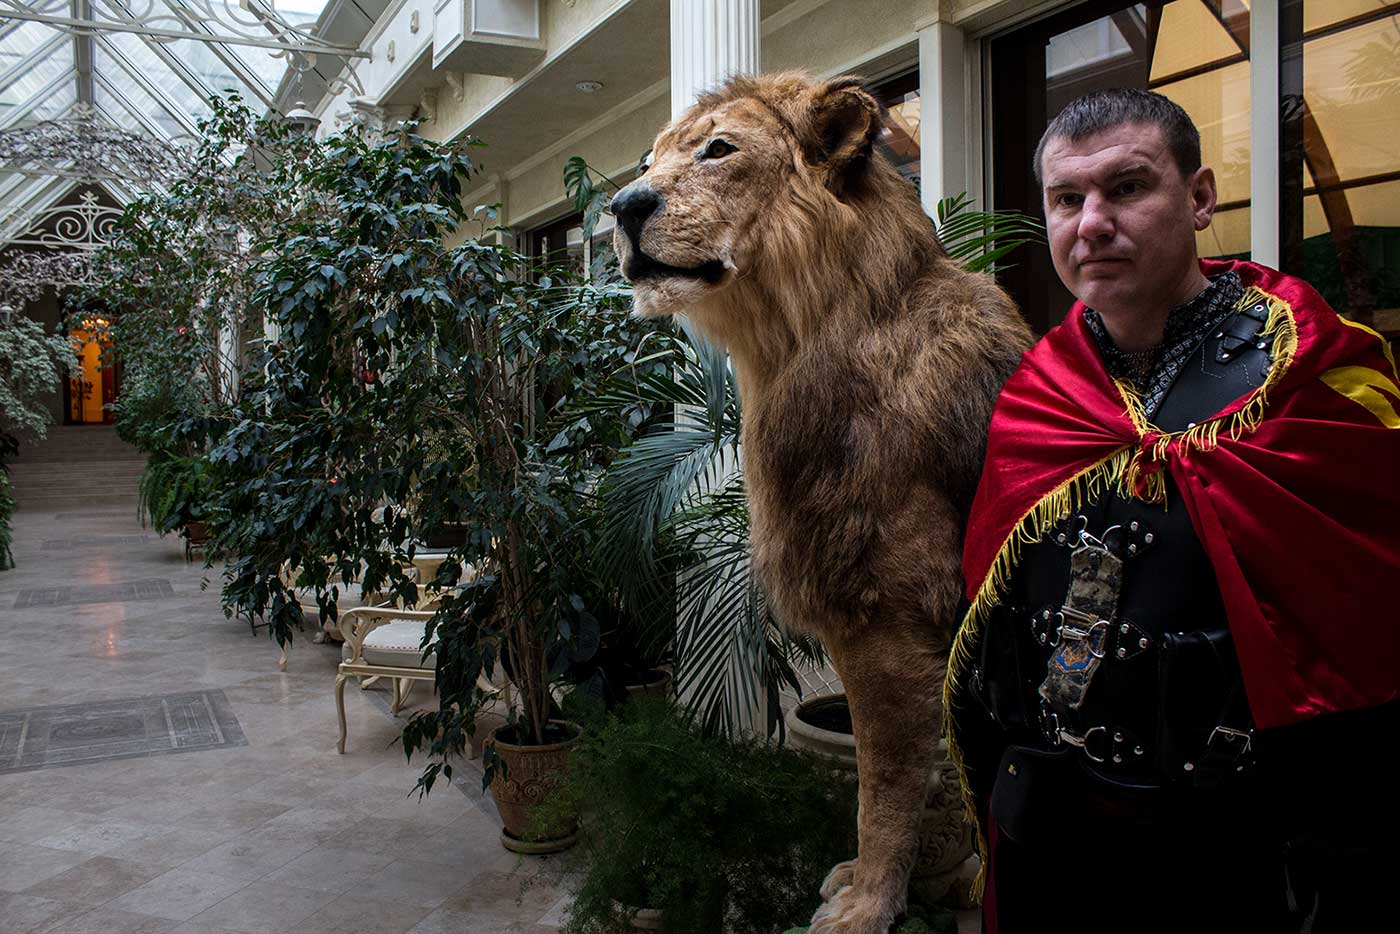 Petro Oliynik poses for a photograph beside a stuffed lion, in a corridor of Mezhyhirya's wellness complex.